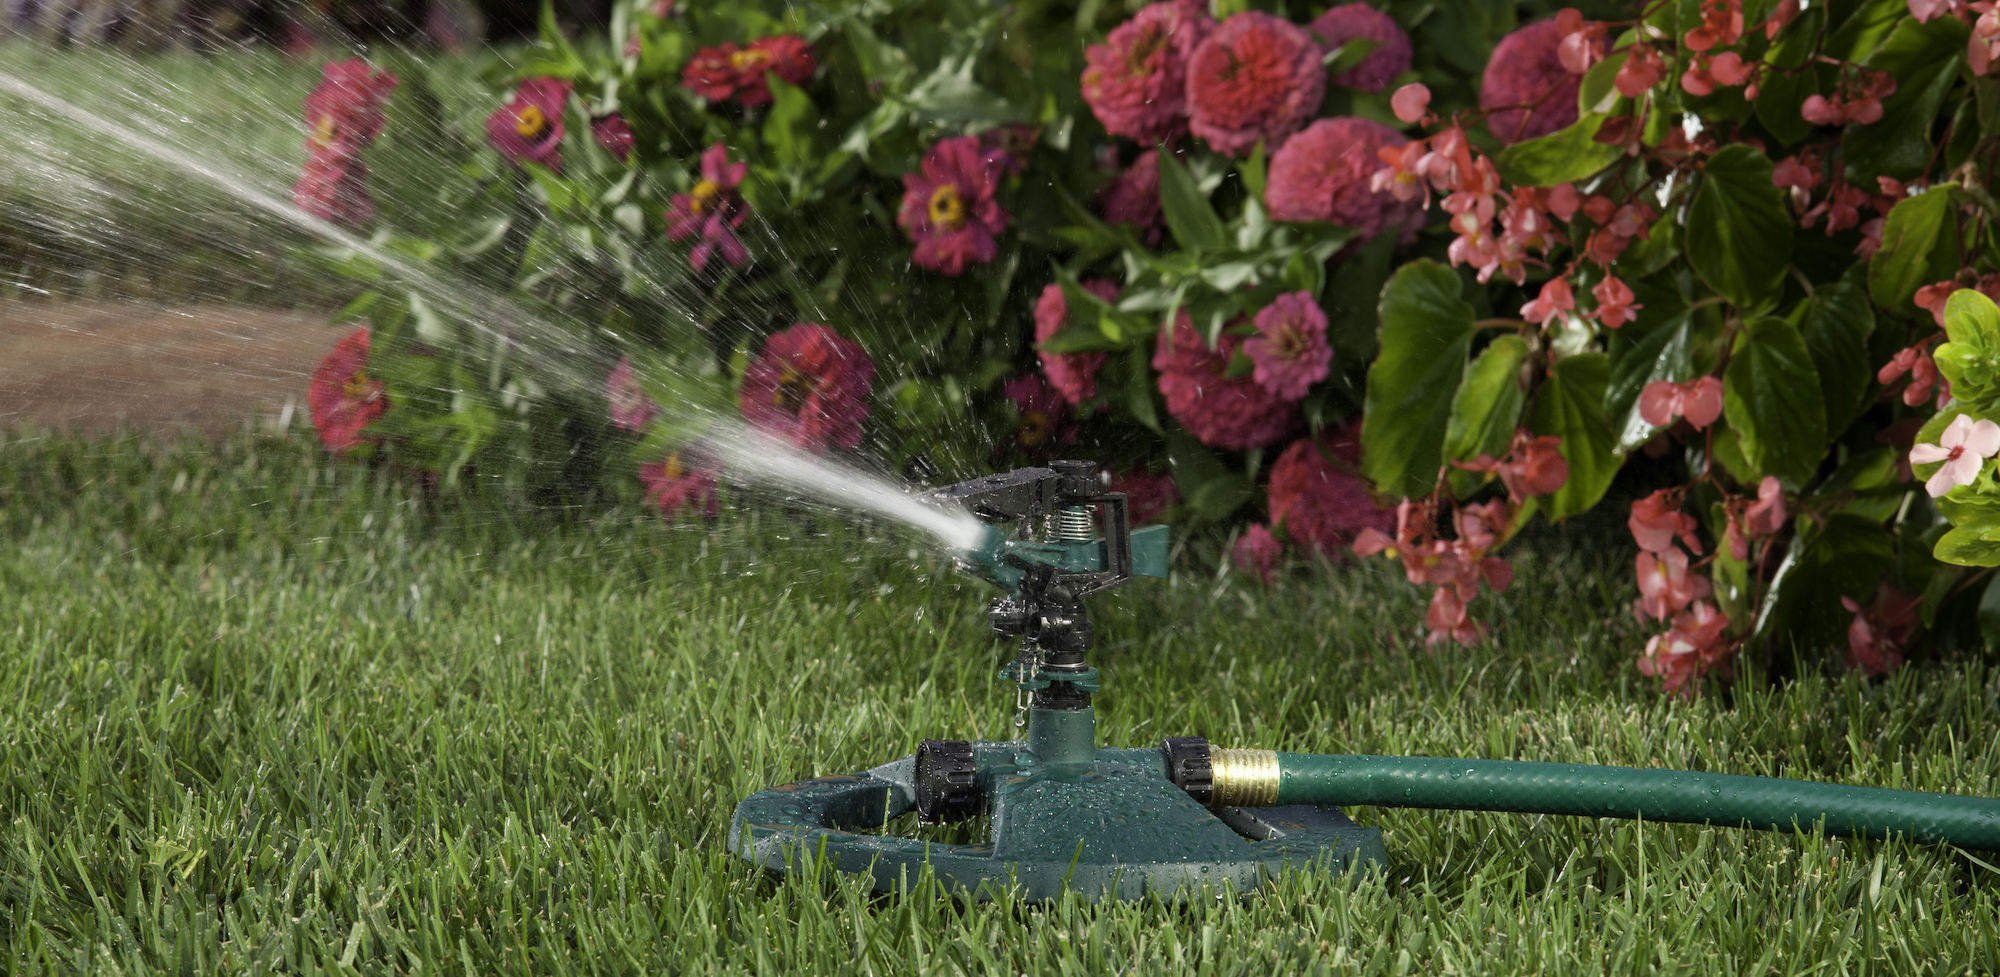 lawn being watered by a sprinkler system